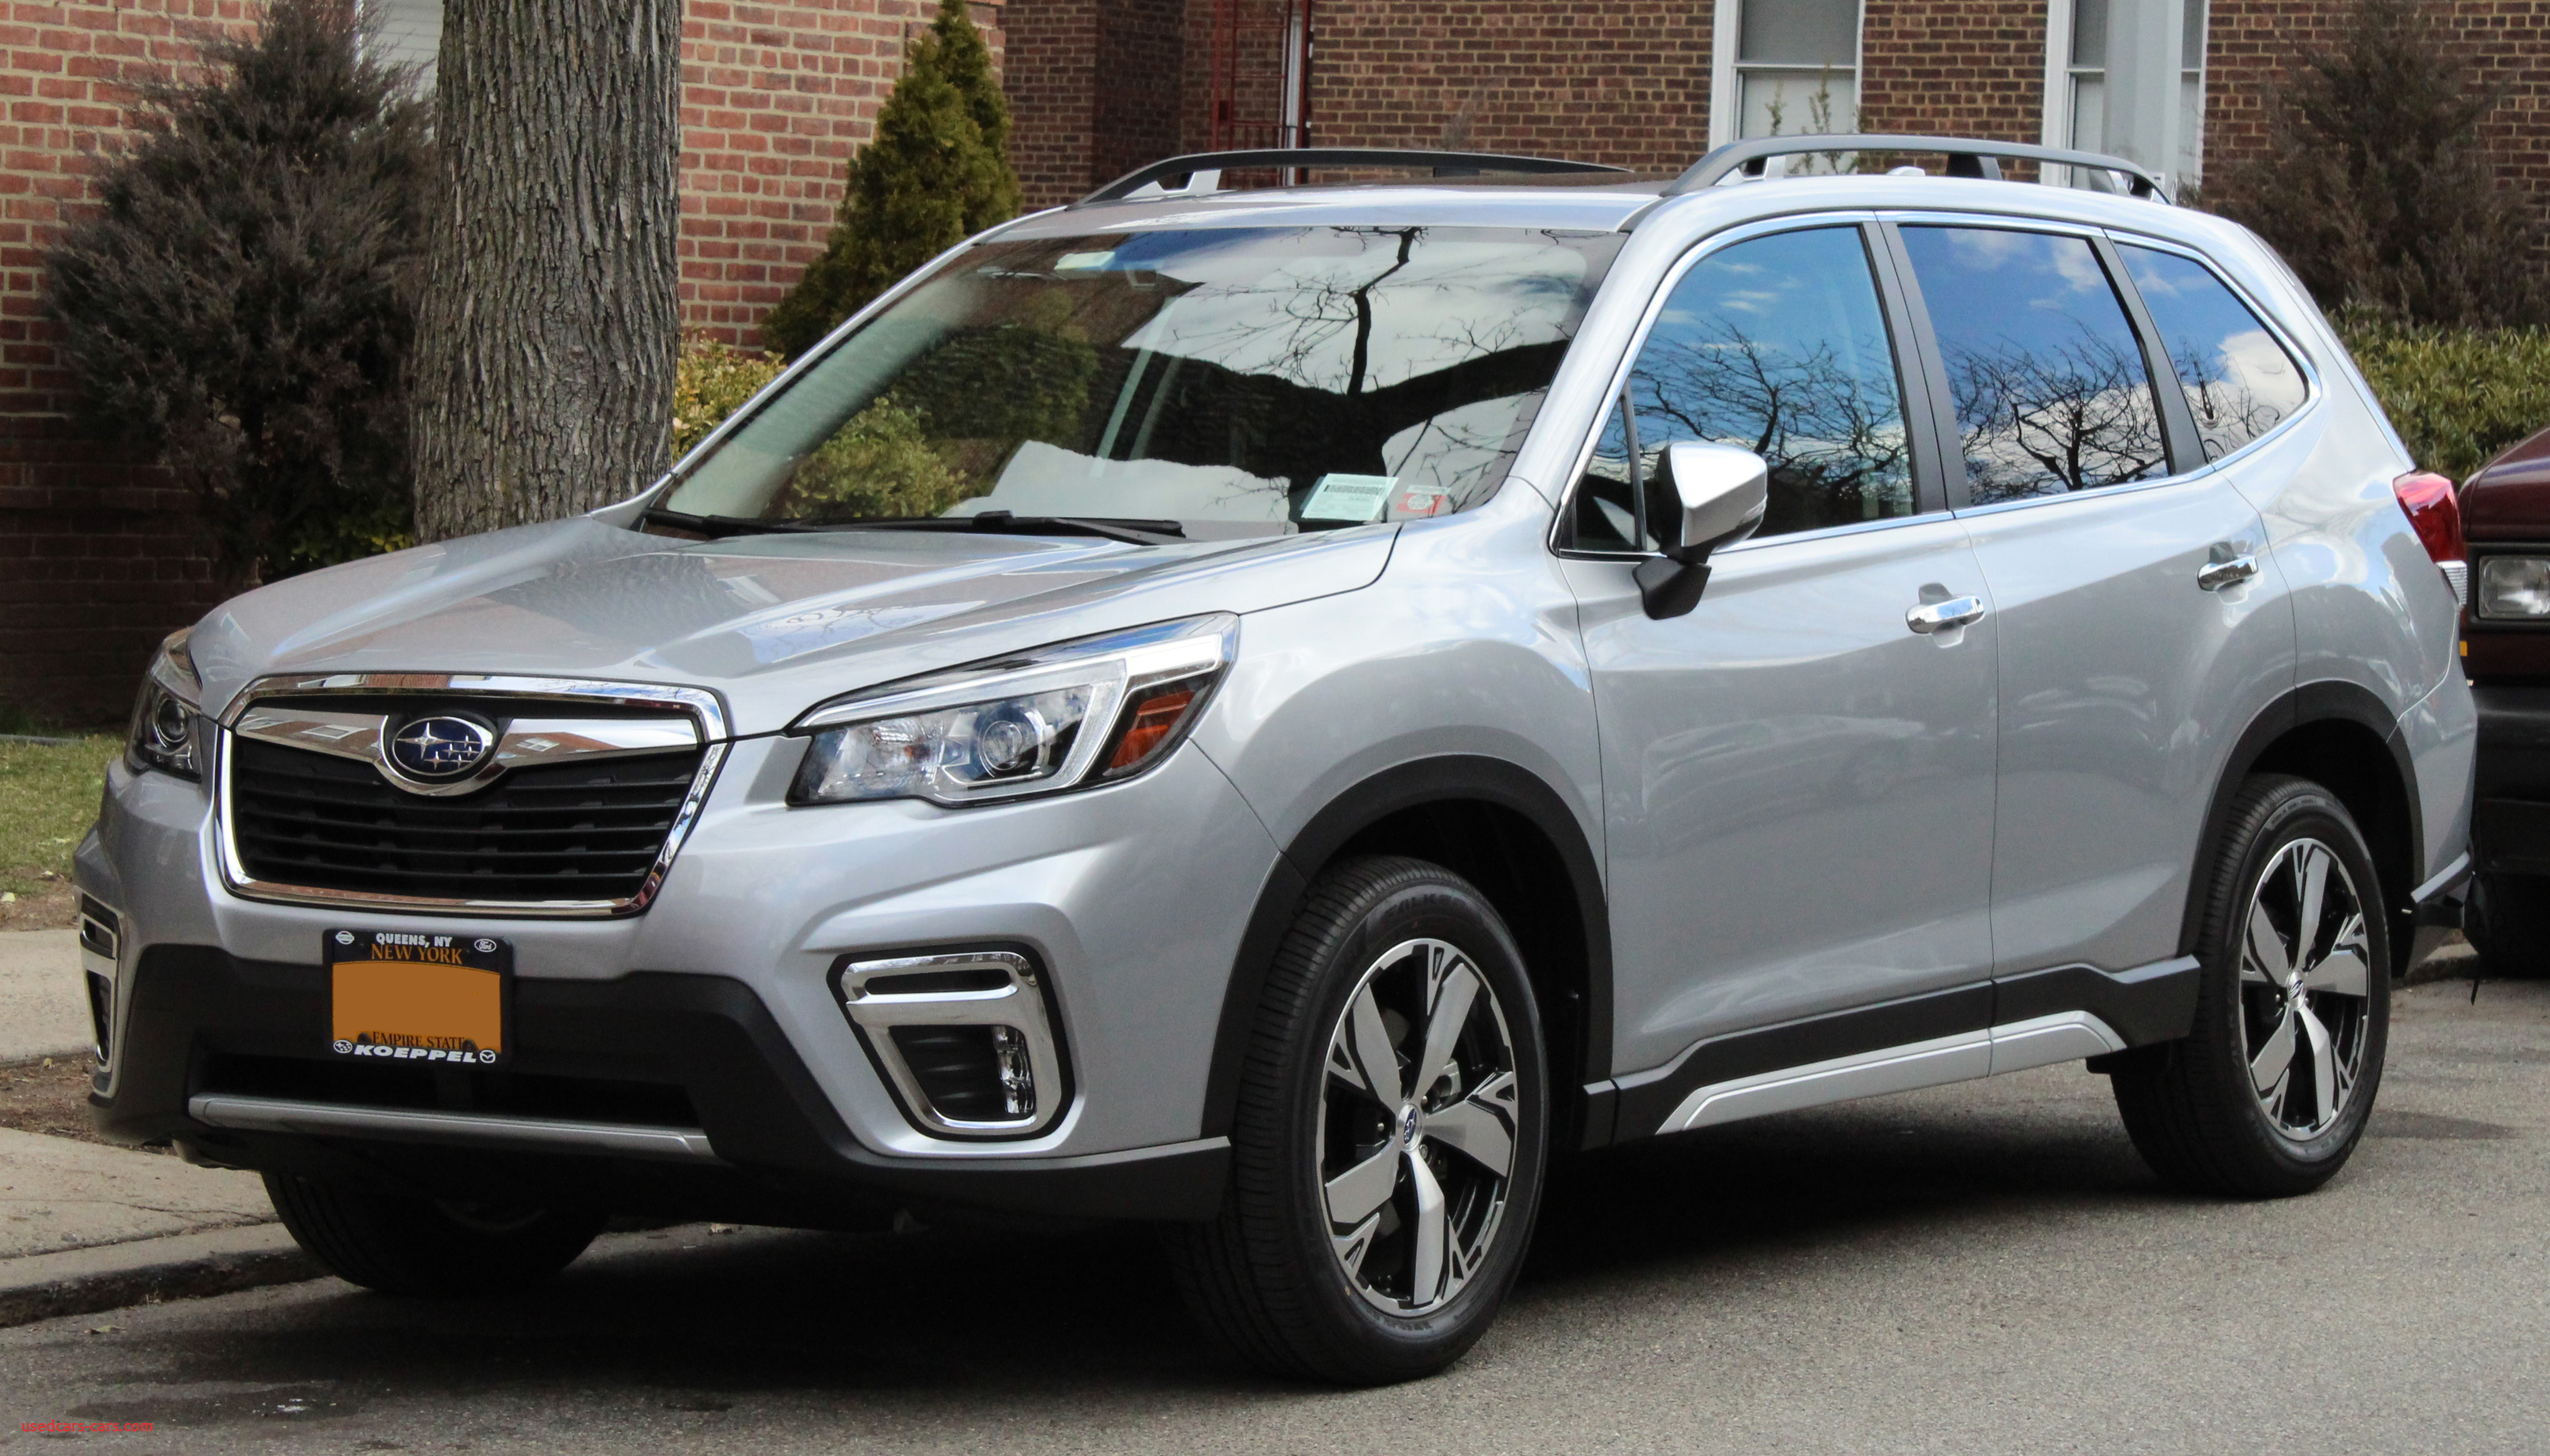 2019 Subaru Forester 2 5i Touring AWD front 3 17 19